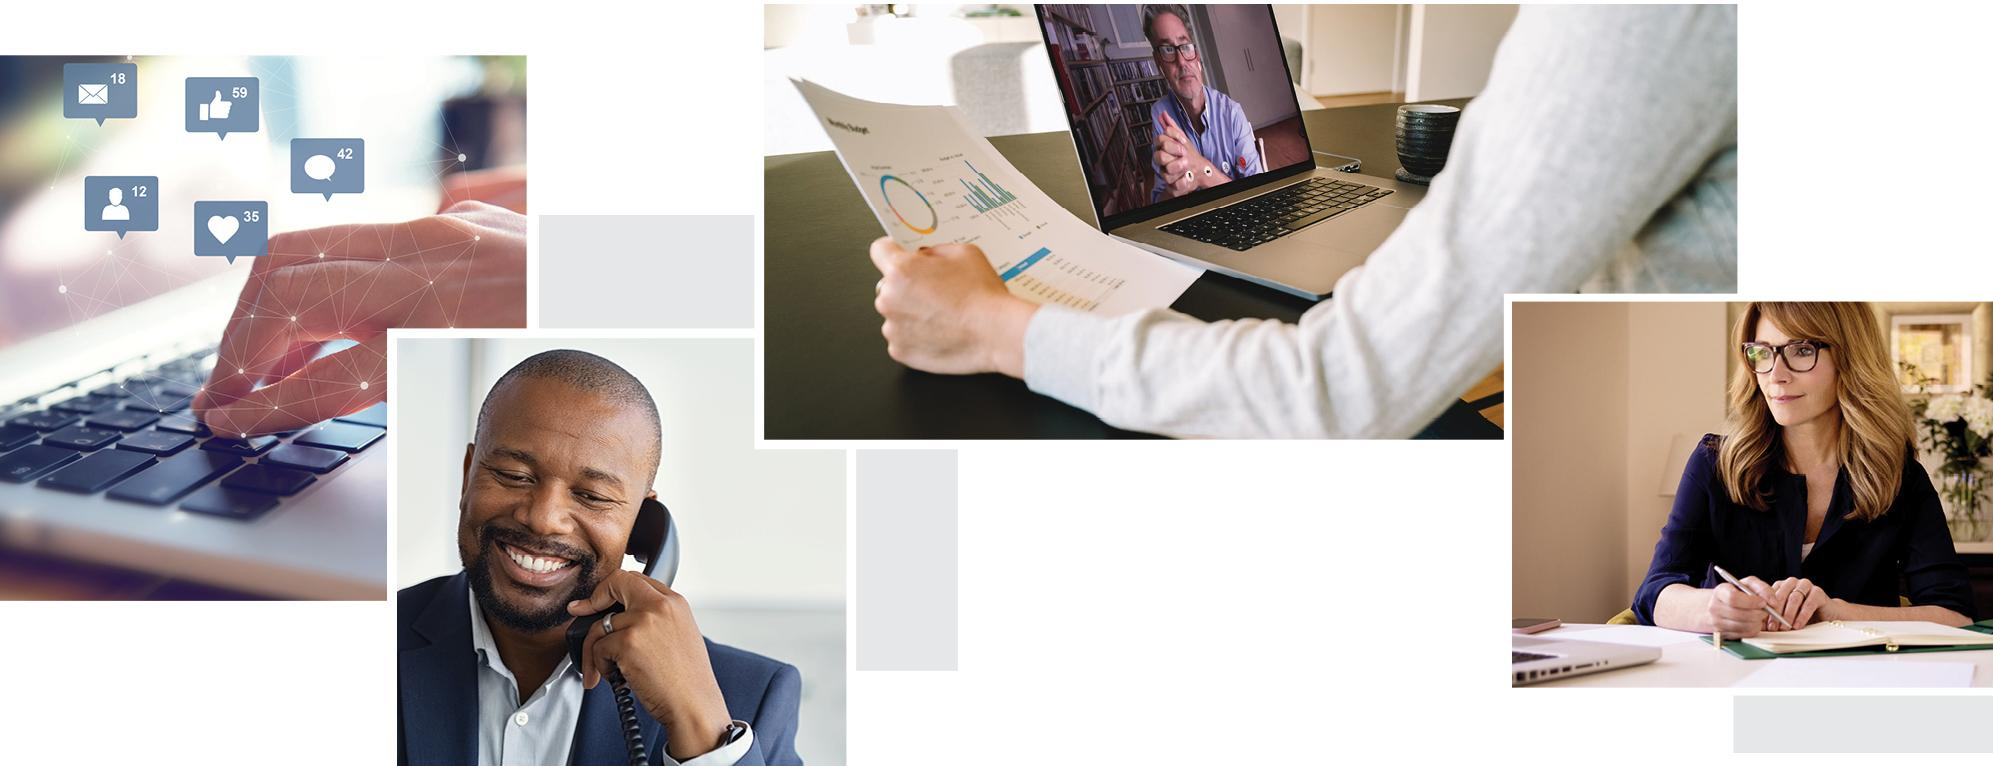 Communicating Effectively with Clients image